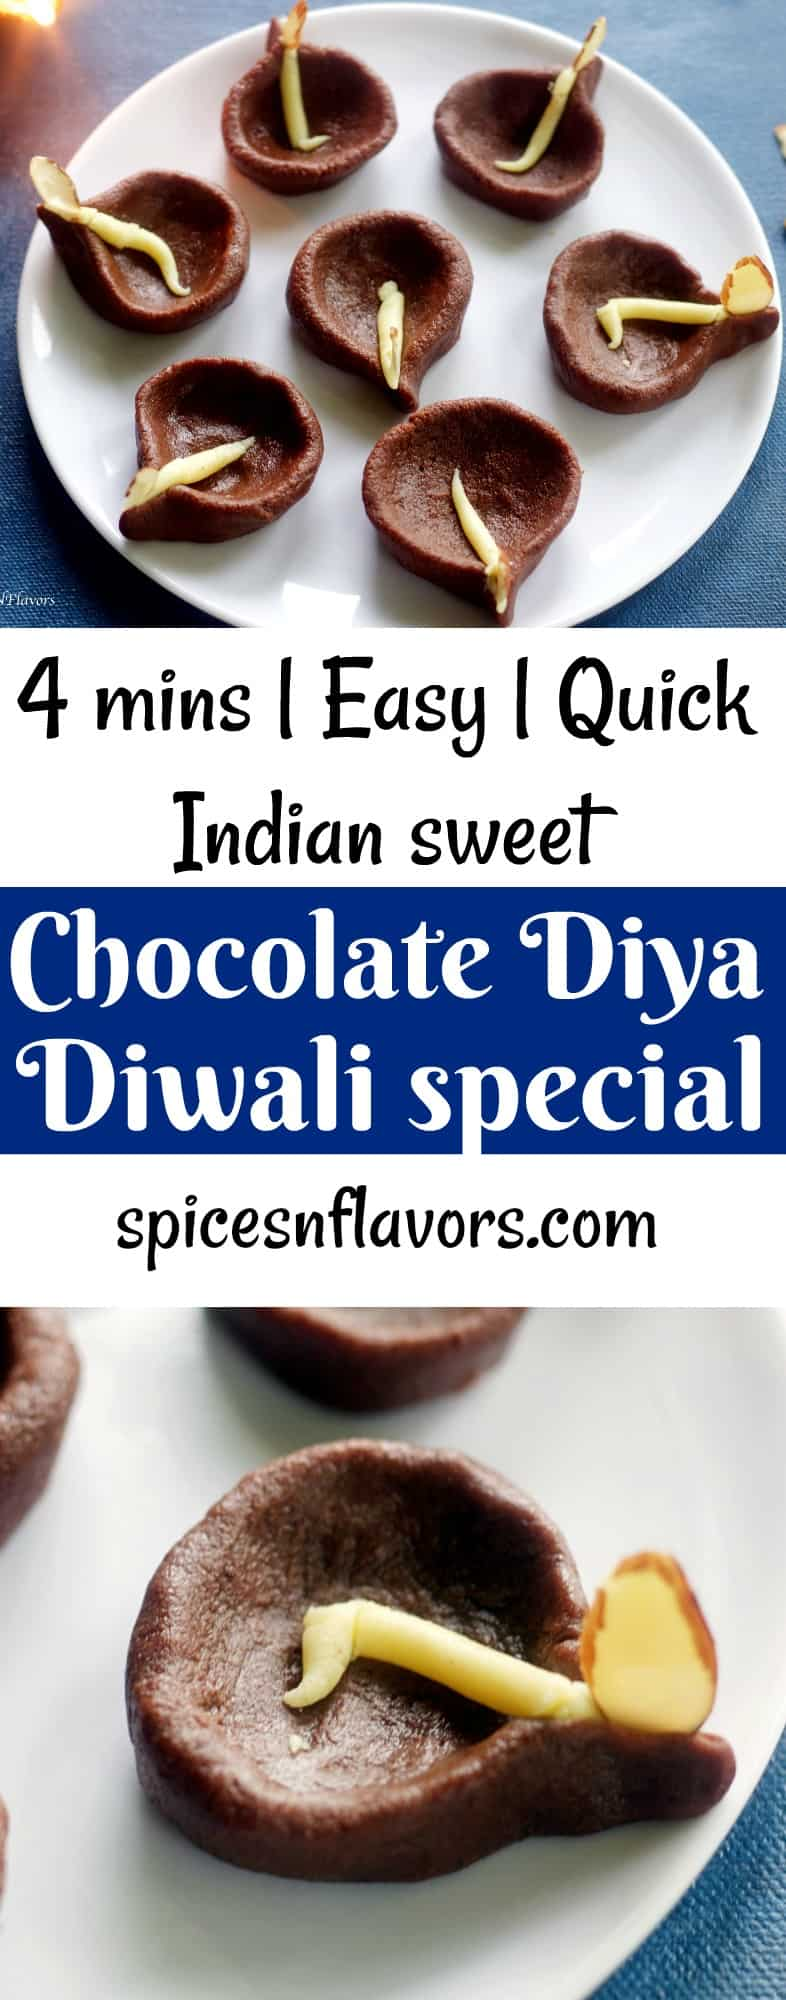 chocolate diya peda chocolate peda indian sweet indian mithai diwali special indian sweet quick diwali recipes easy diwali recipes indian festival recipes